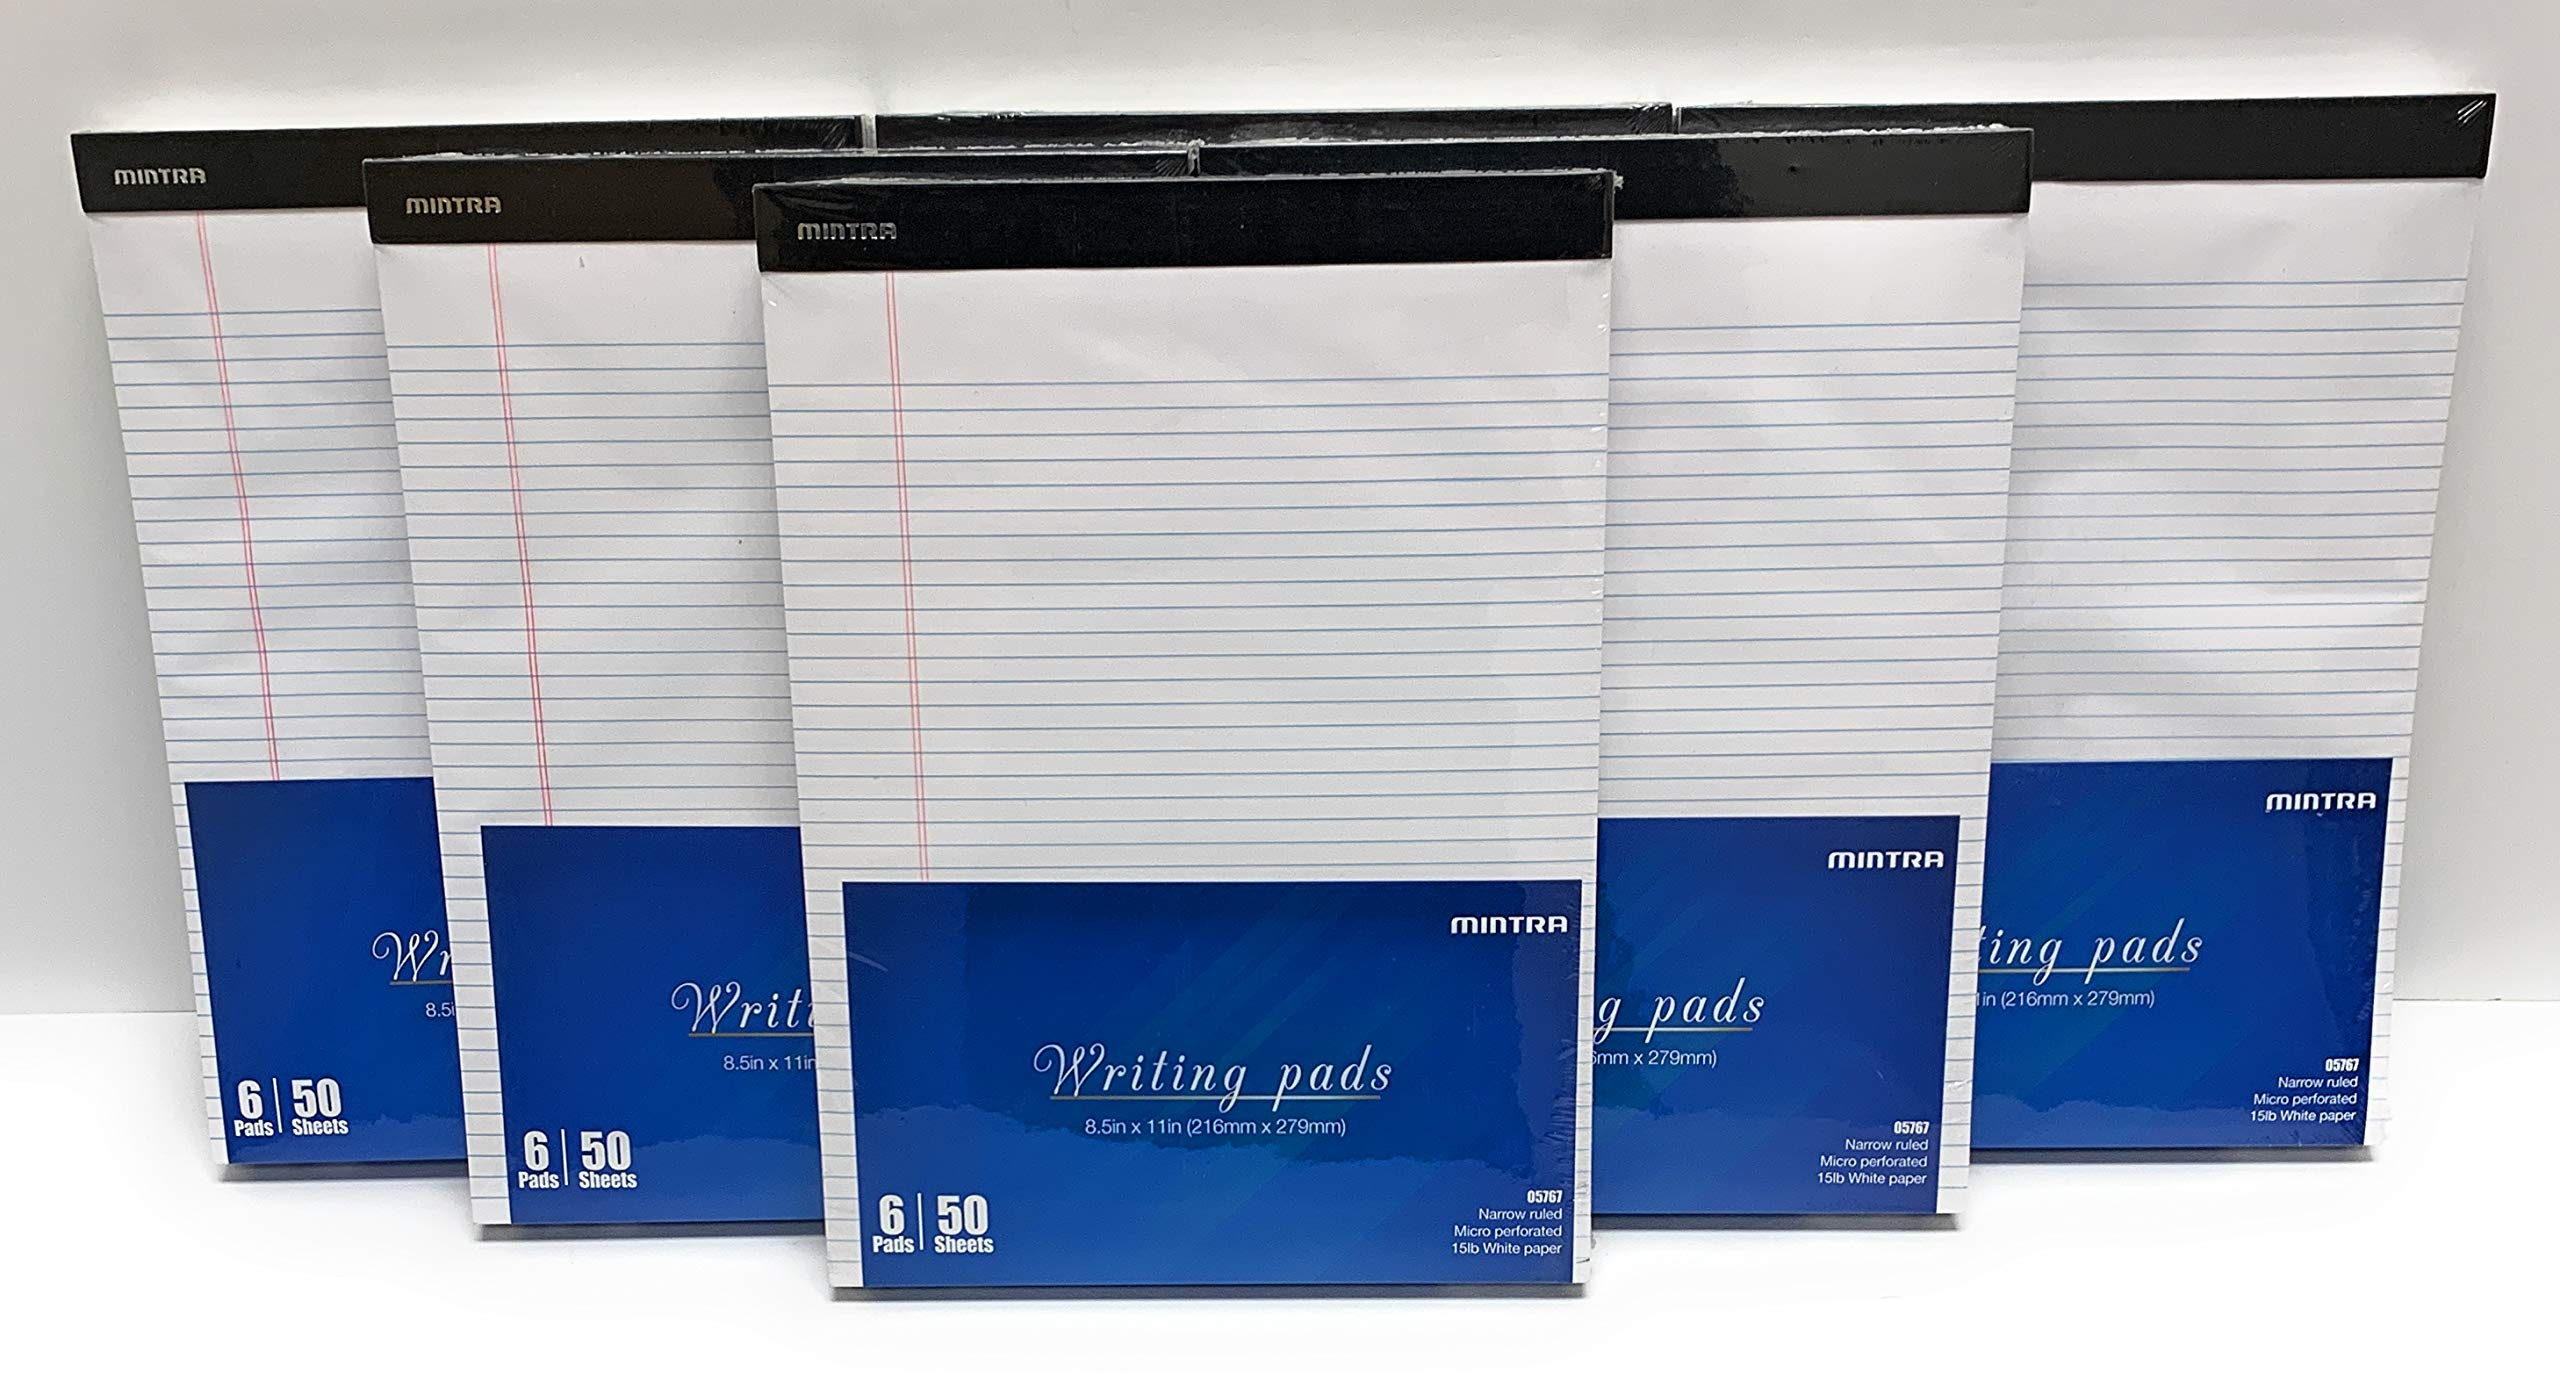 Mintra Office Legal Pads - 50 Sheets per Notepad - Micro perforated Writing Pad/Notebook Paper for School, College, Office, Work (xBasic, 8.5in x 11in, Narrow (White), 36pk (6-6pks)) by Mintra Office